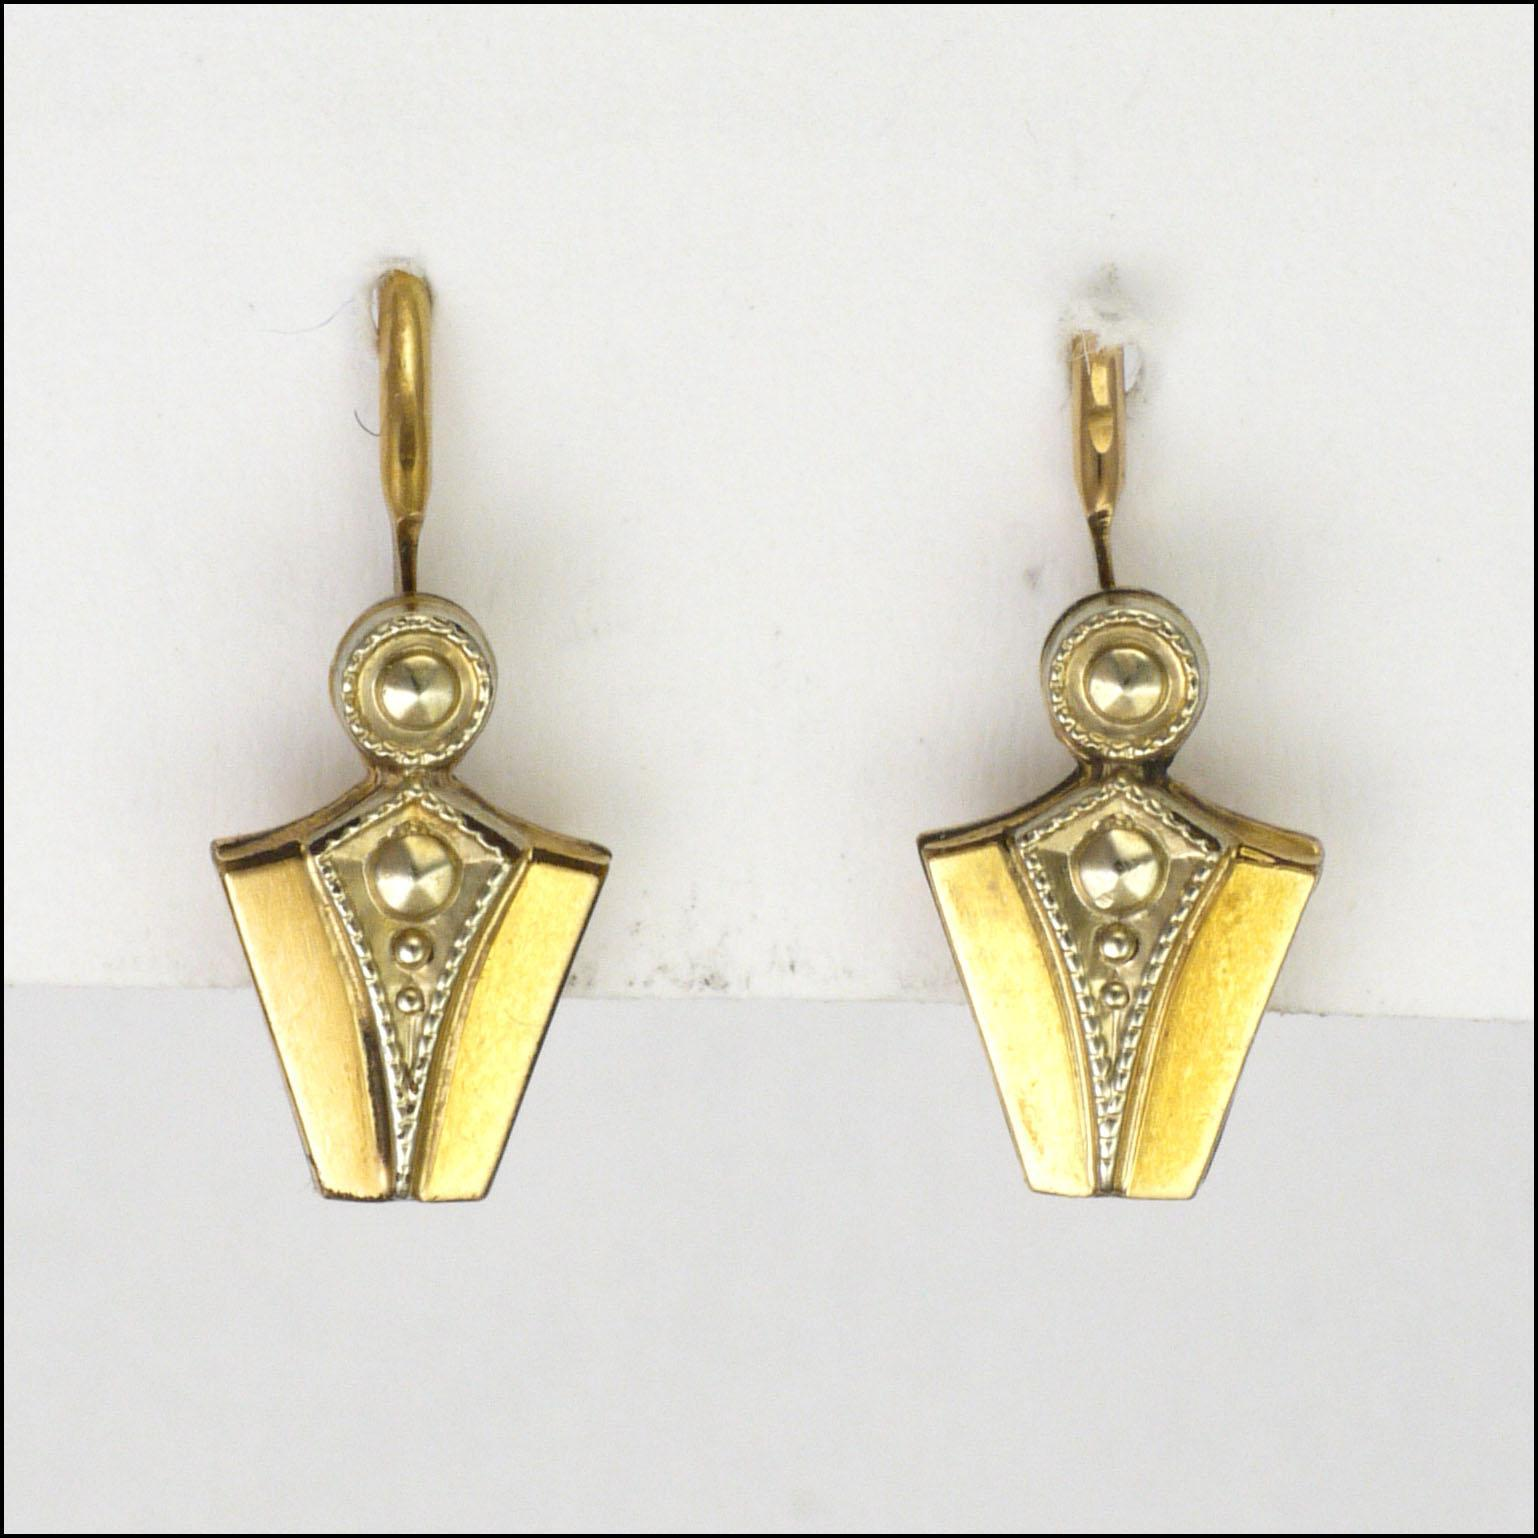 French Art Deco Gold Filled Lever Back Earrings  Fix